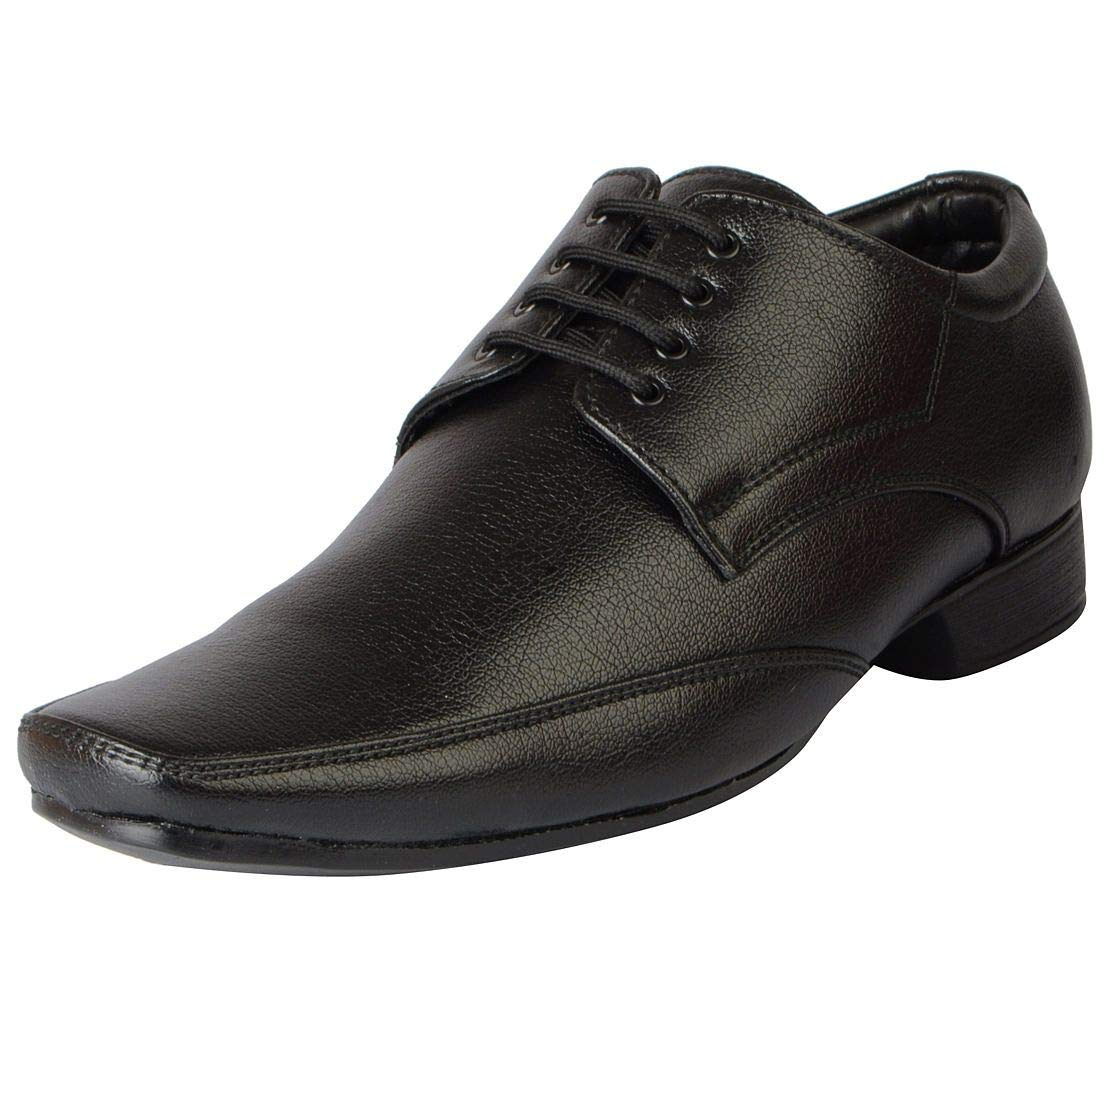 Bata Men's formal shoes Lace-up black